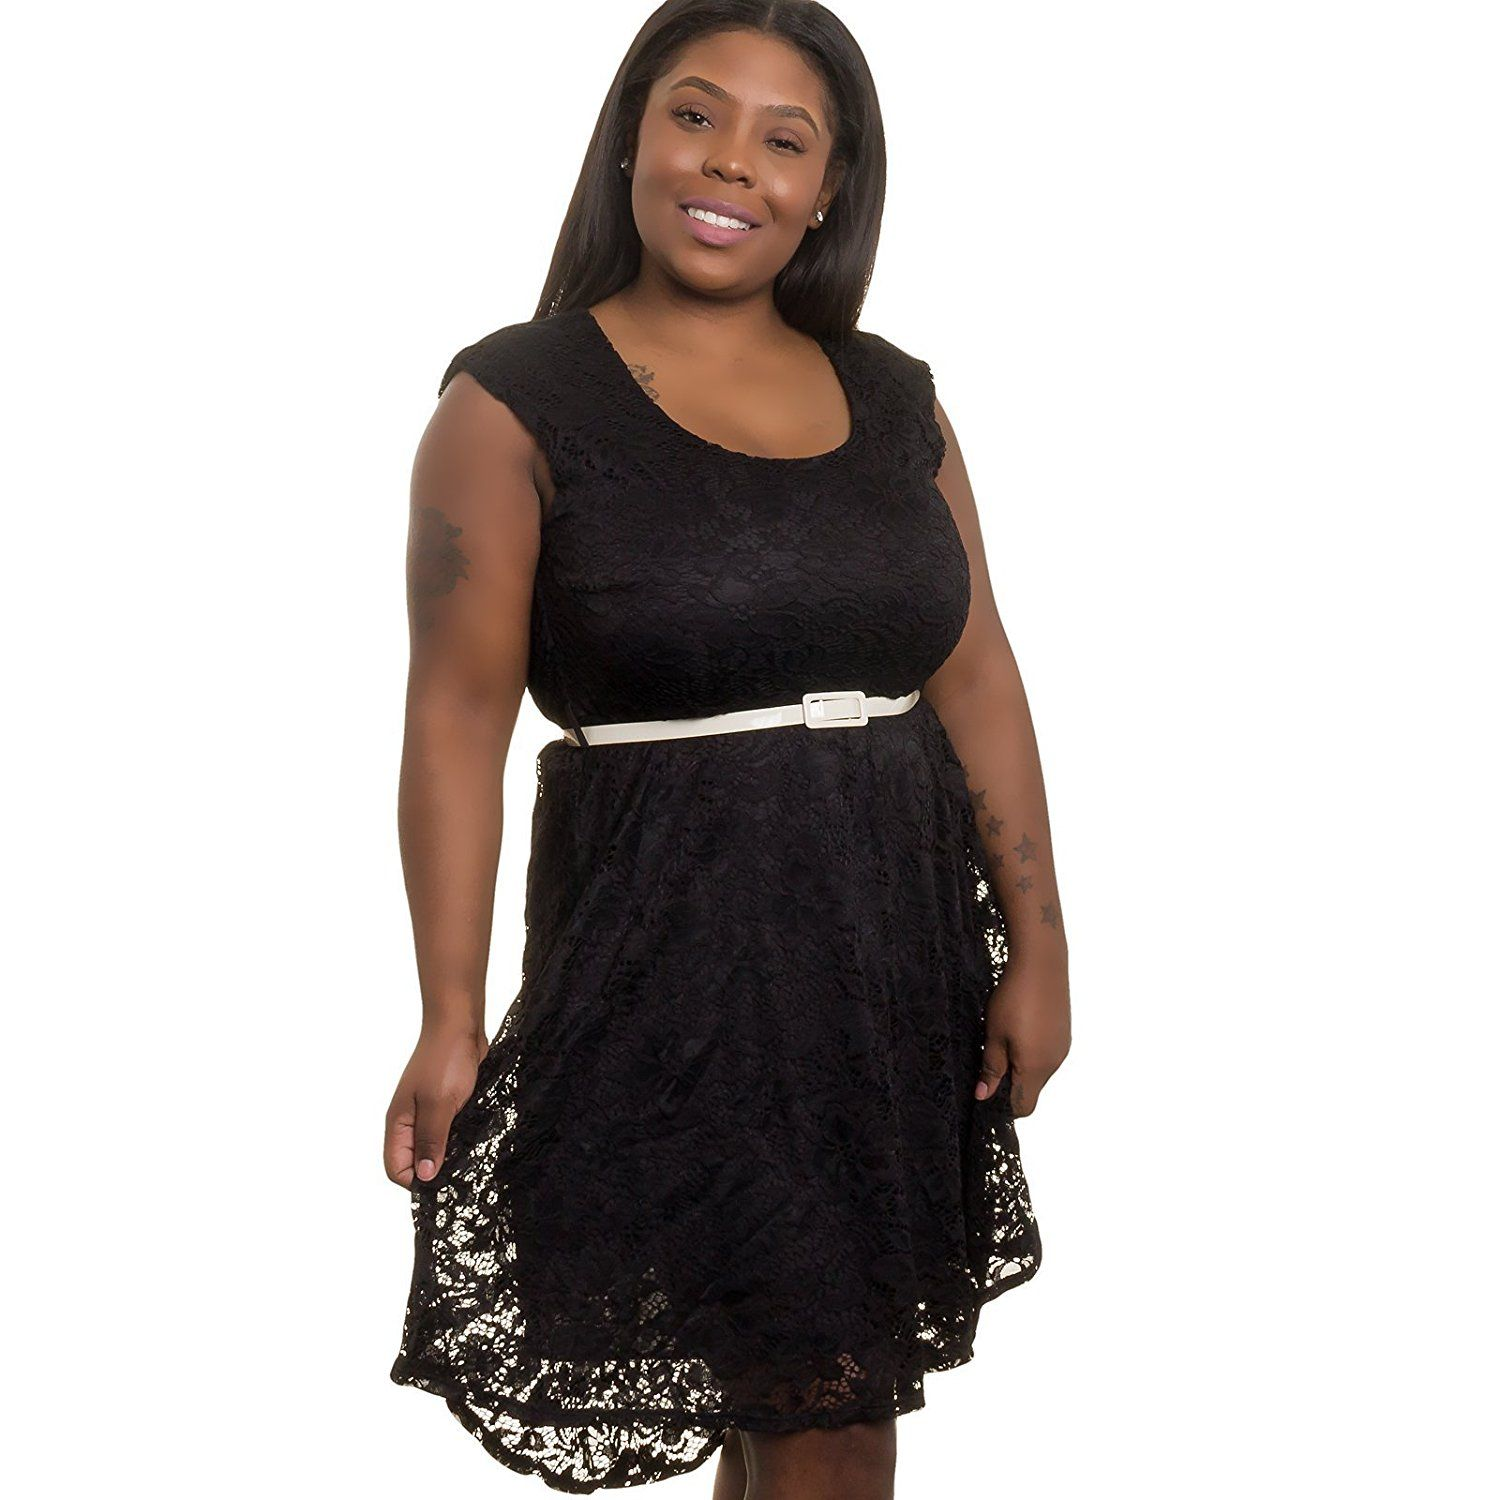 Silver Lilly Womens Junior Plus Size Crochet Lace Dress To View